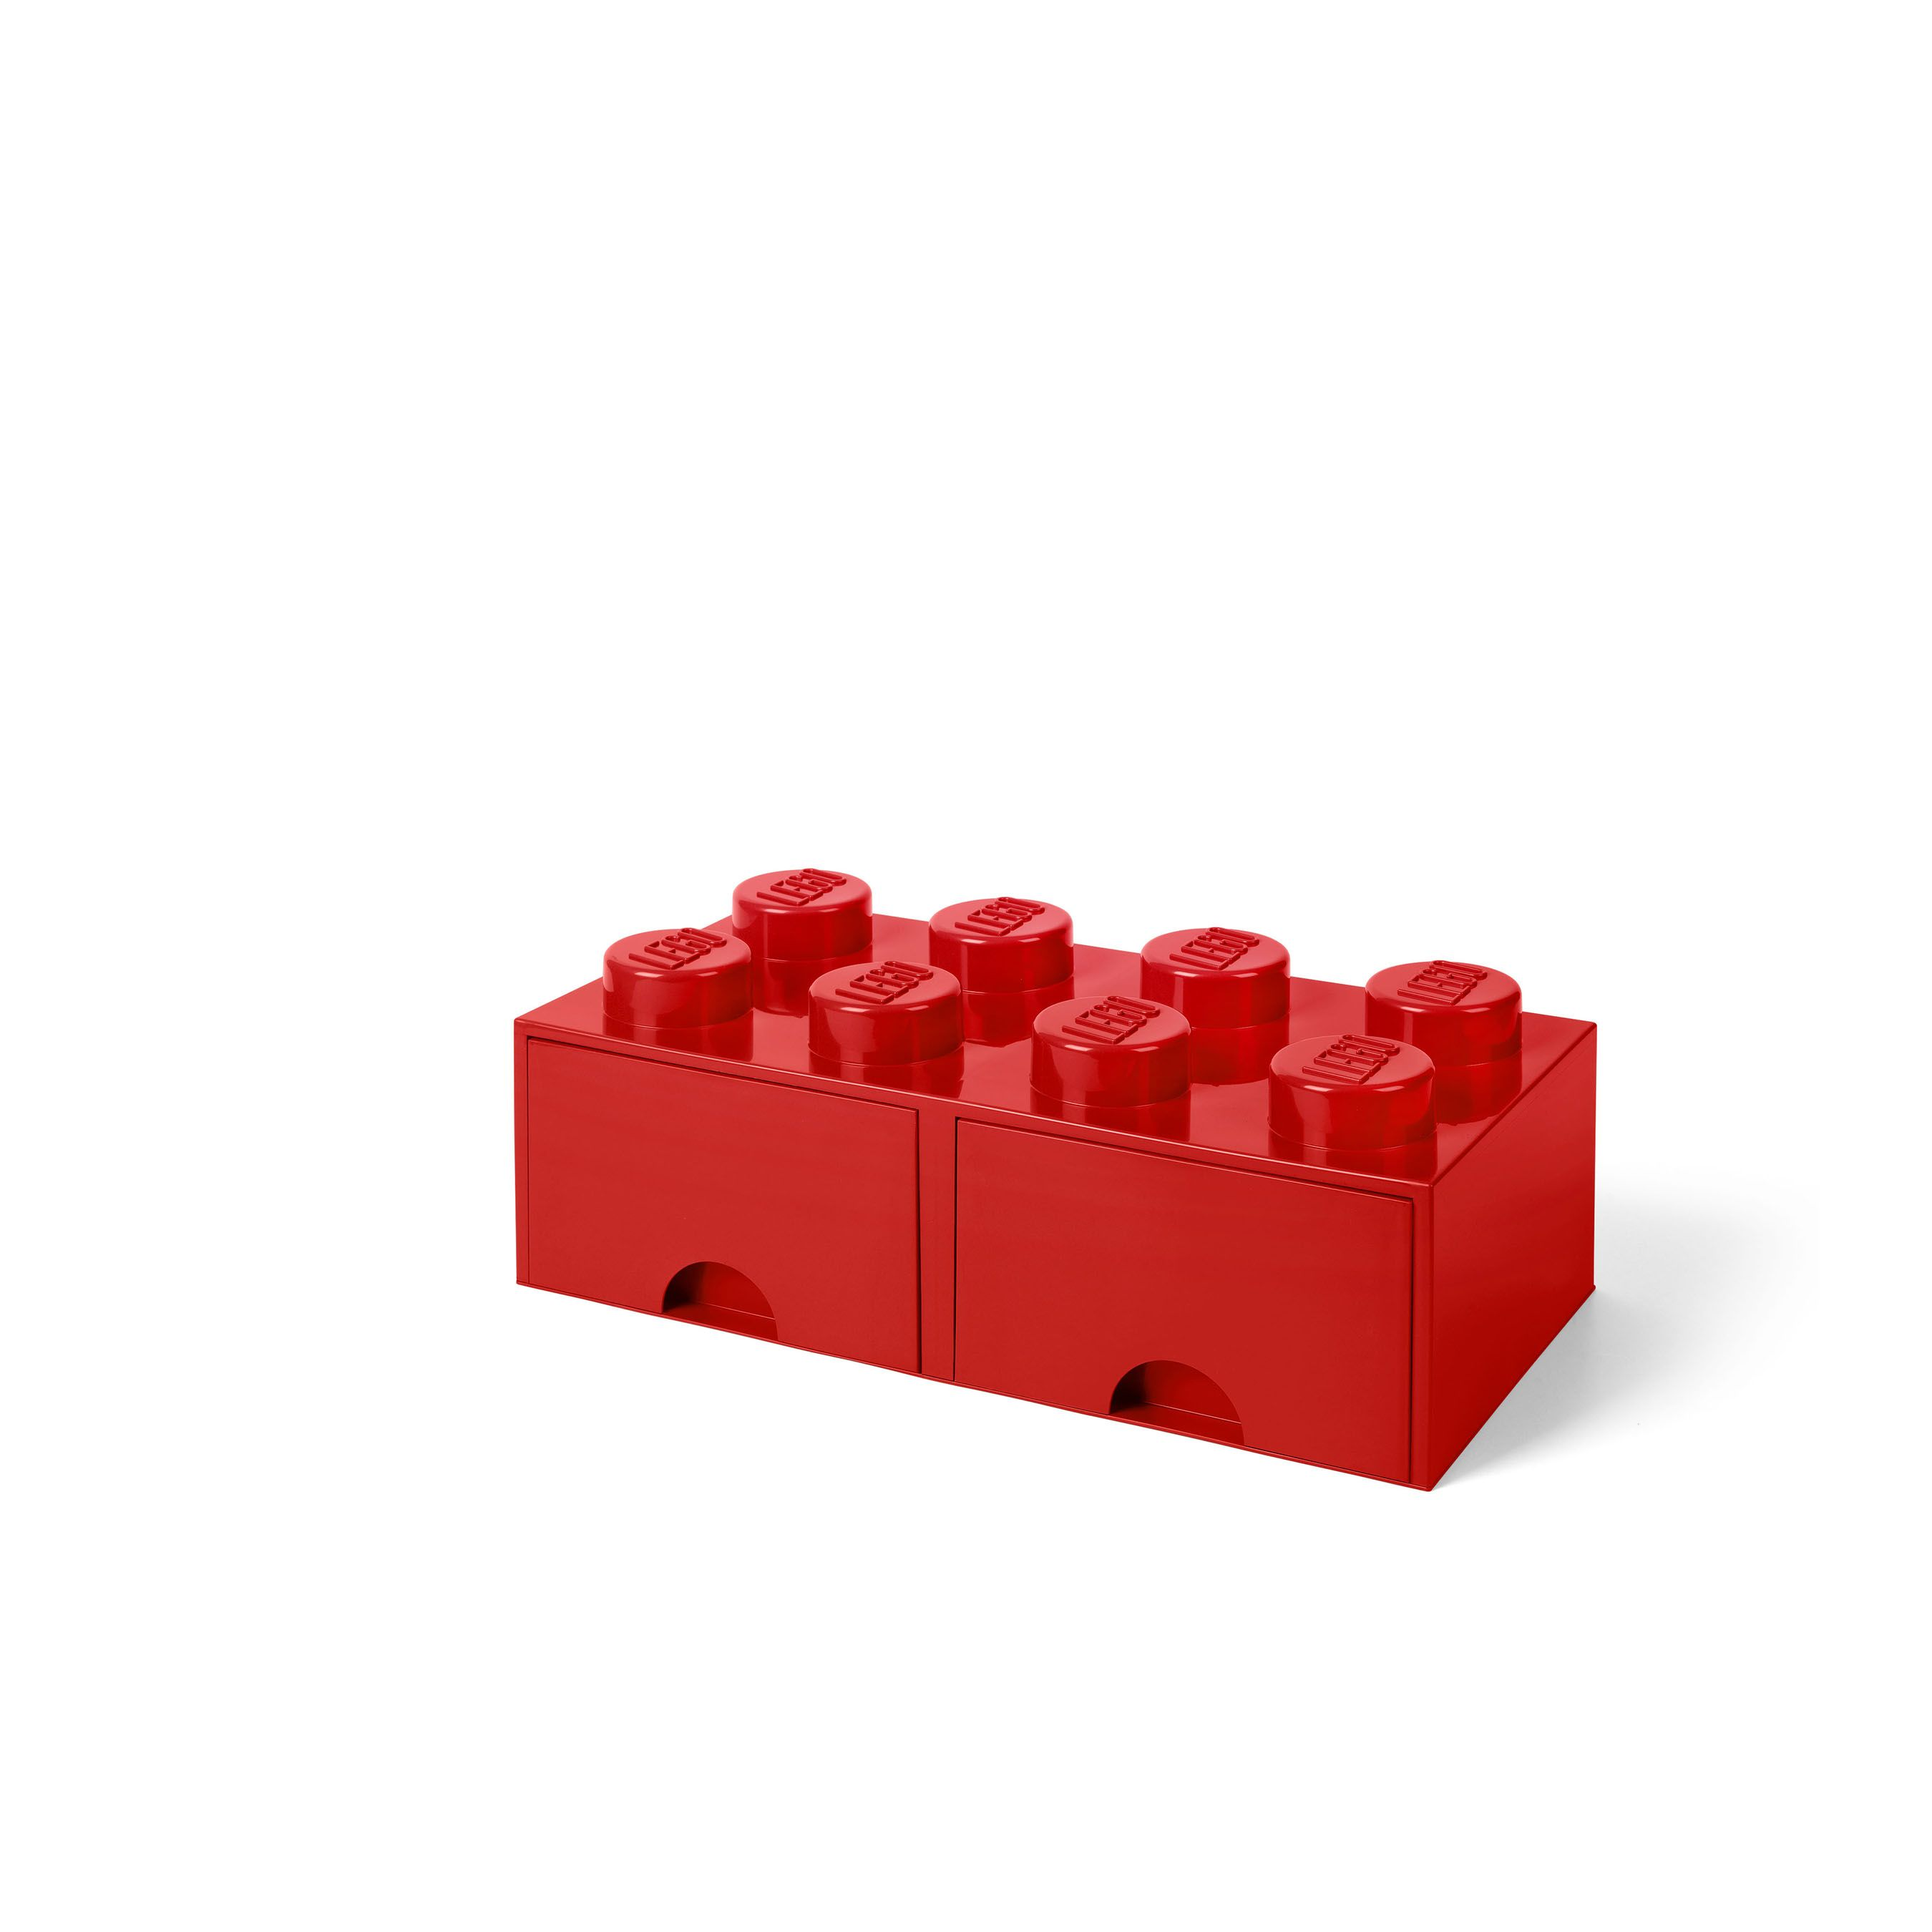 LEGO Storage 8 Brick Toy Box, Bright Red - Walmart.com #legostorage